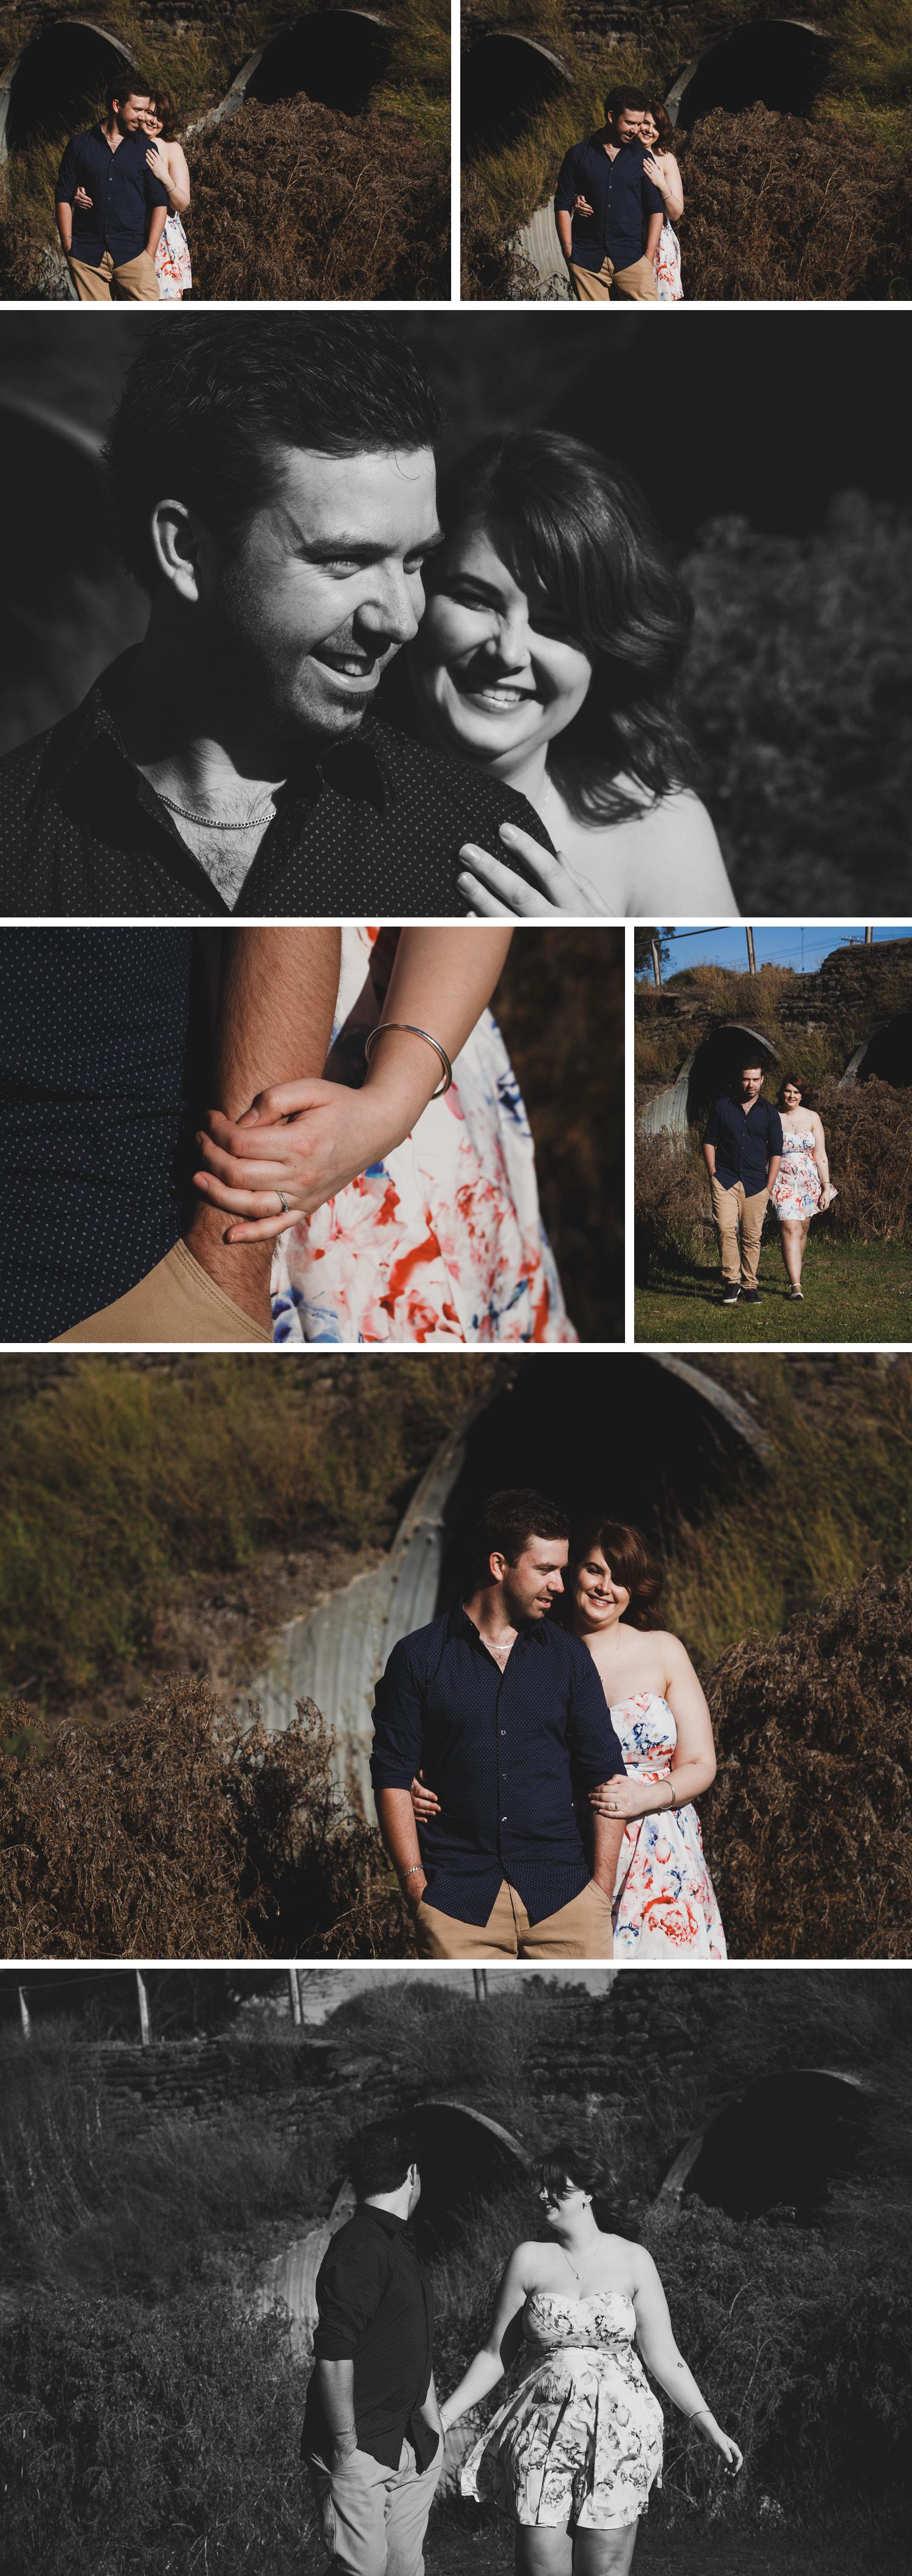 Long Grass Shot Gippsland, Urban Alley Engagement Shoot Victoria, Couple Standing in Long Grass by Danae Studios